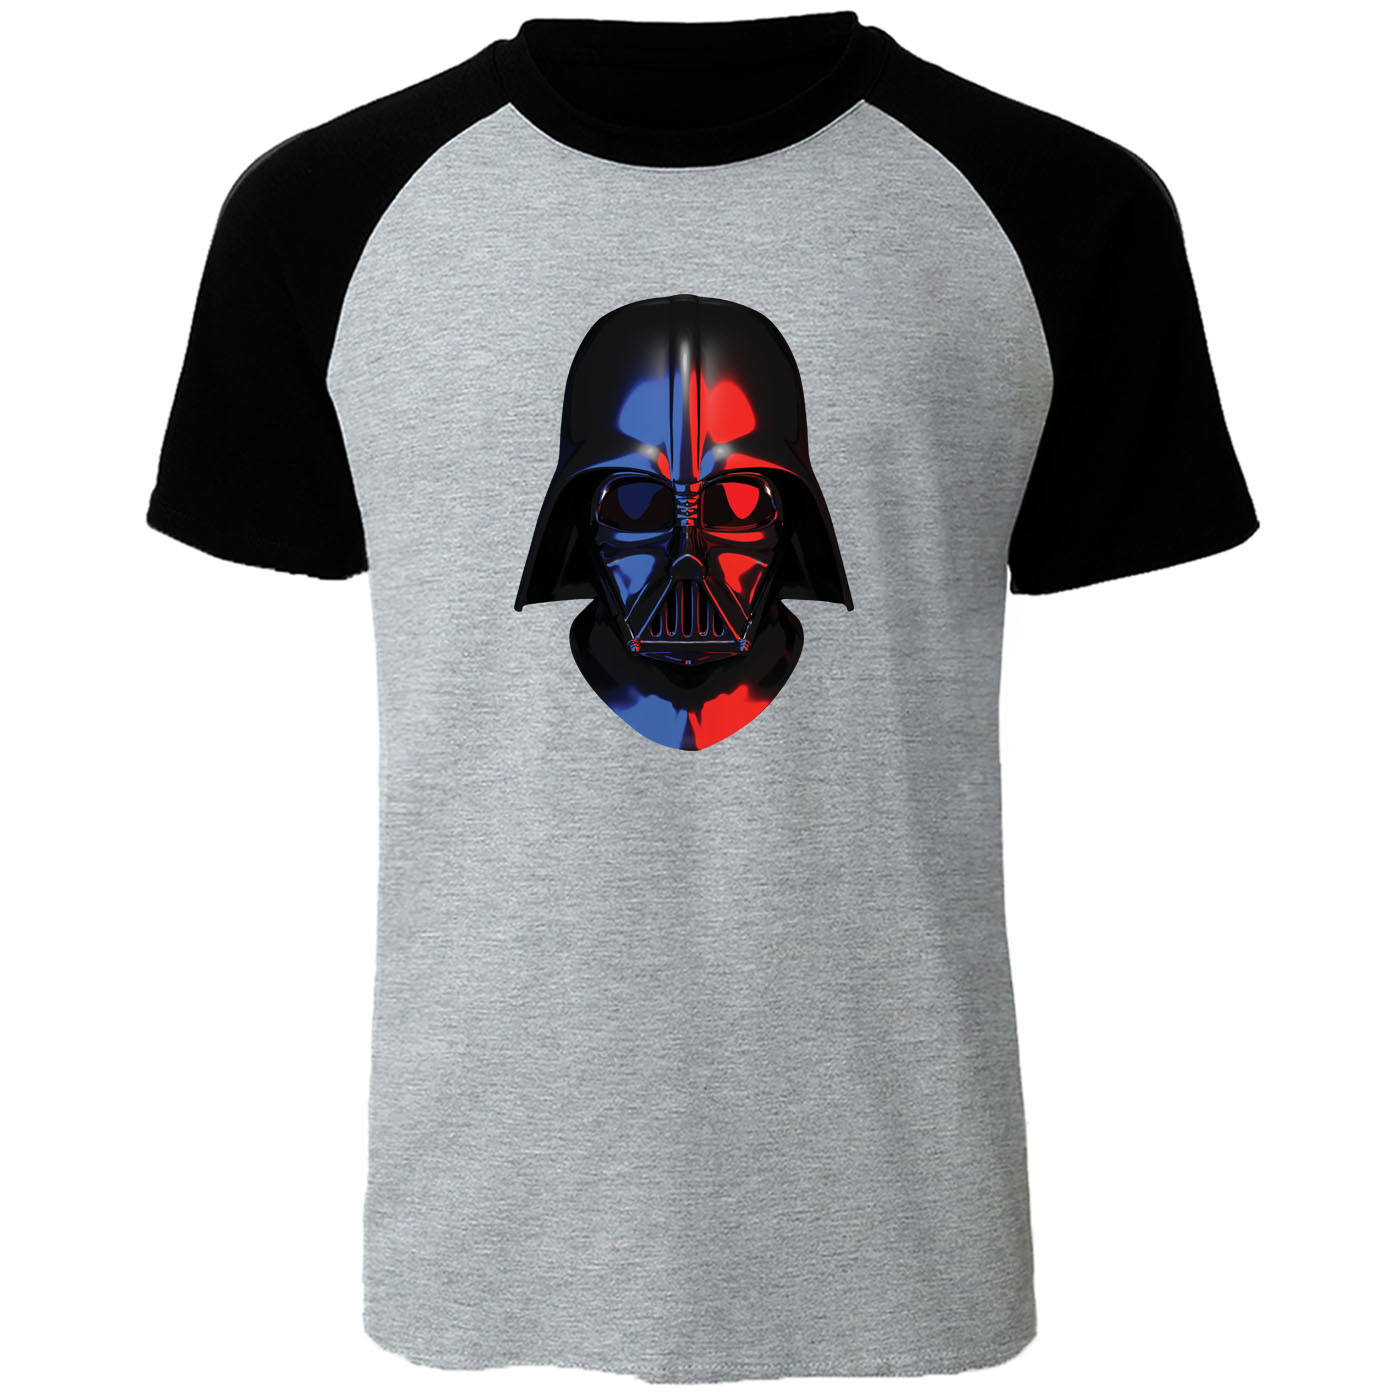 star wars T-shirt 2020 Summer Cotton t shirts men Funny novel Men's tops tee Harajuku Raglan Short Sleeve Darth Vader Streetwear image